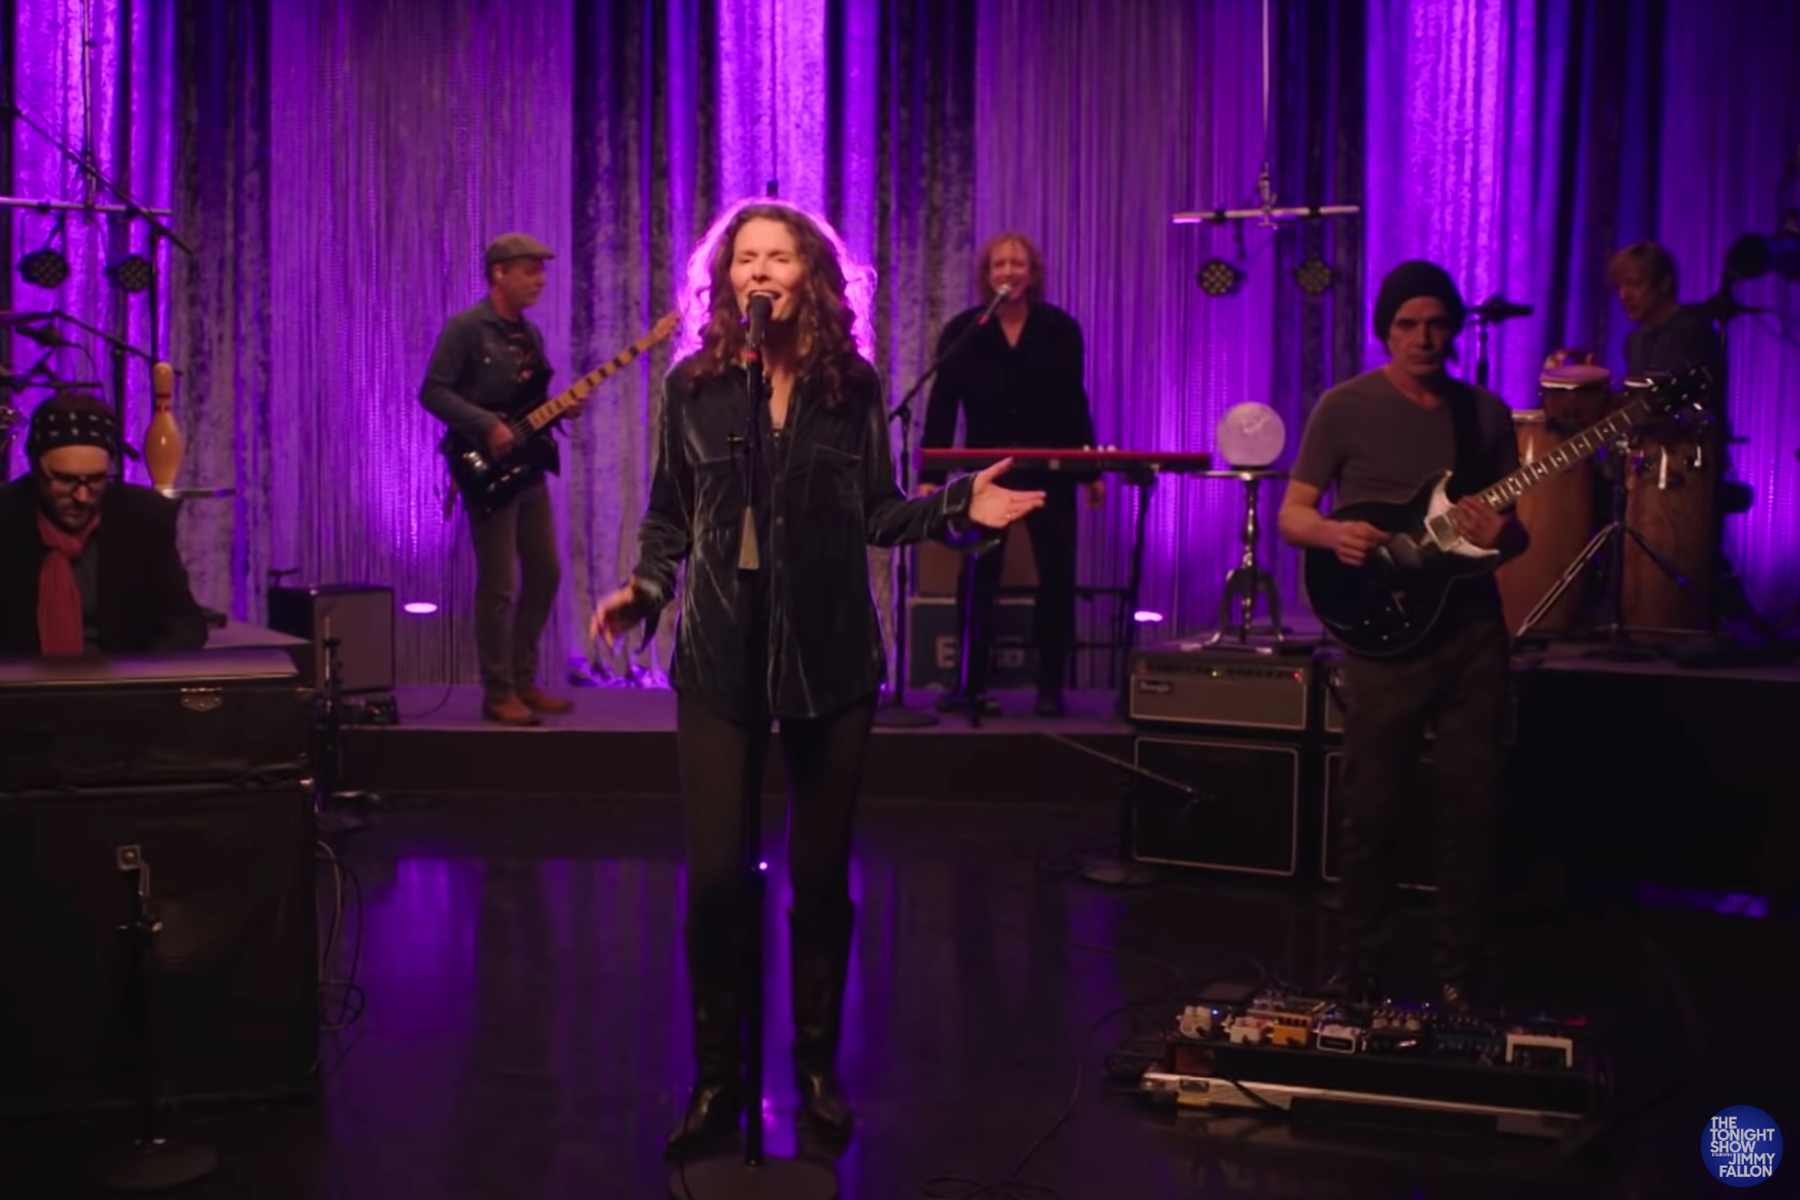 See Edie Brickell and New Bohemians Perform 'Stubborn Love' on 'Fallon'